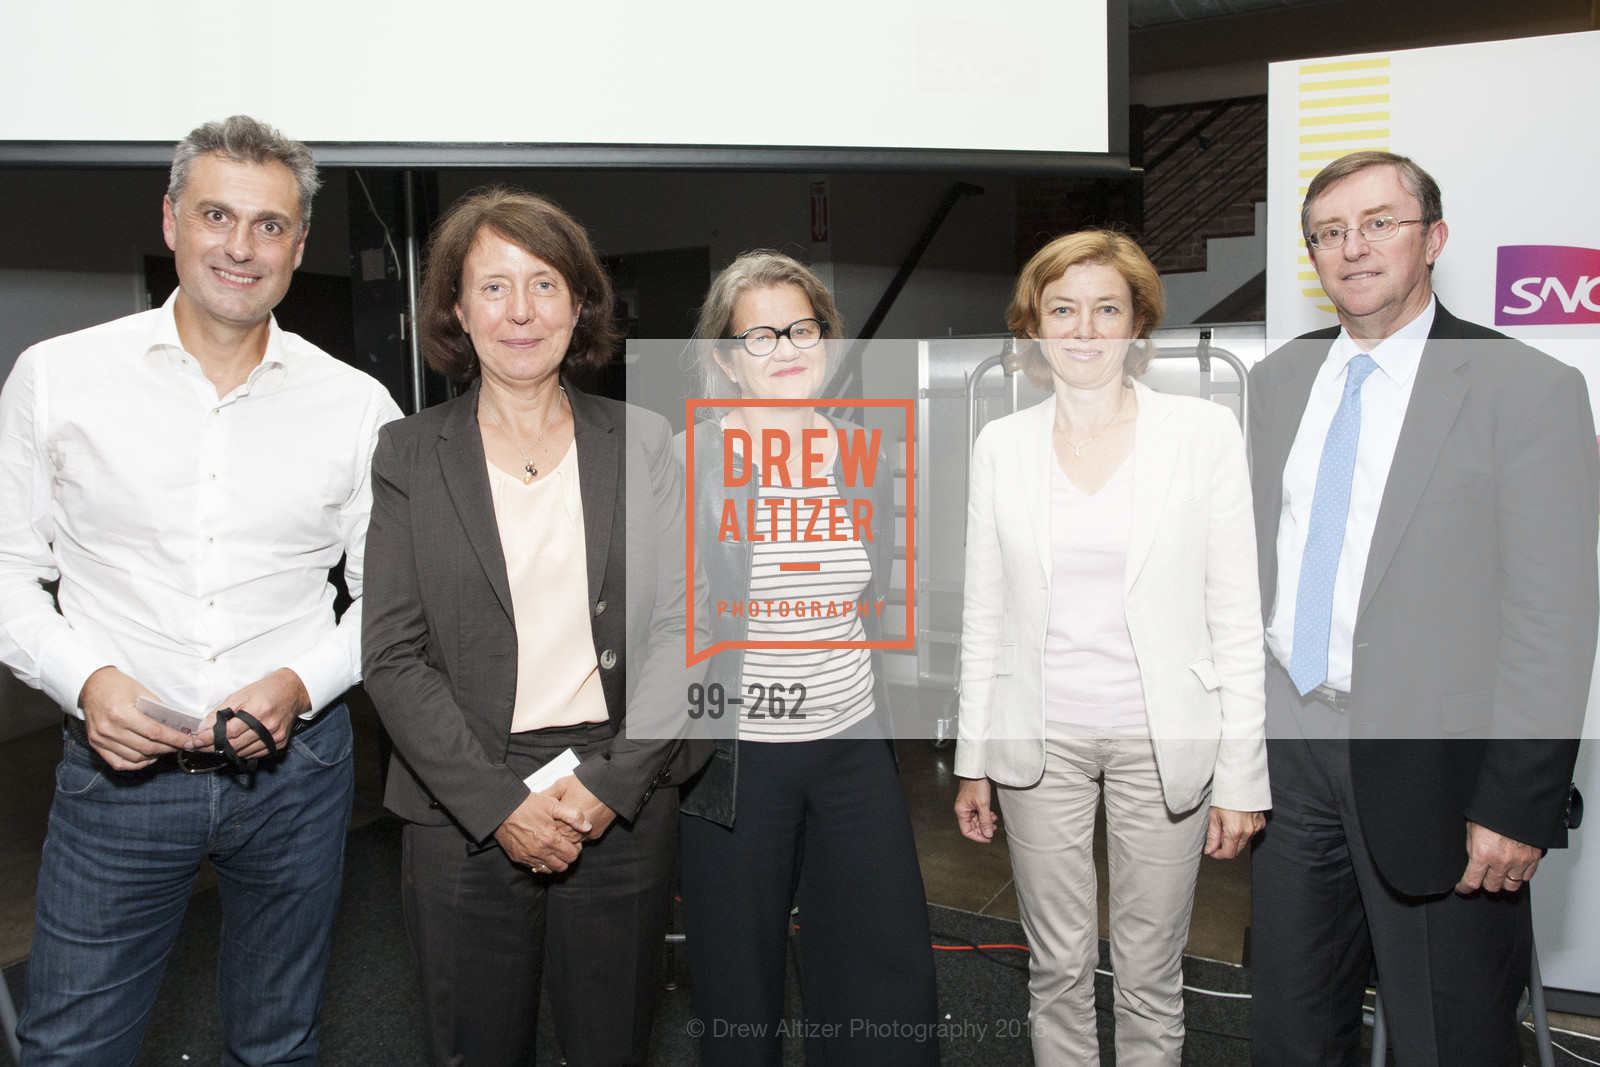 Yves Tyrode, Barbara Dalibard, Benedicte Tilloy, Florence Parly, Pierre Izard, Inauguration of SNCF Innovation Lab, 169 11th St, August 26th, 2015,Drew Altizer, Drew Altizer Photography, full-service agency, private events, San Francisco photographer, photographer california